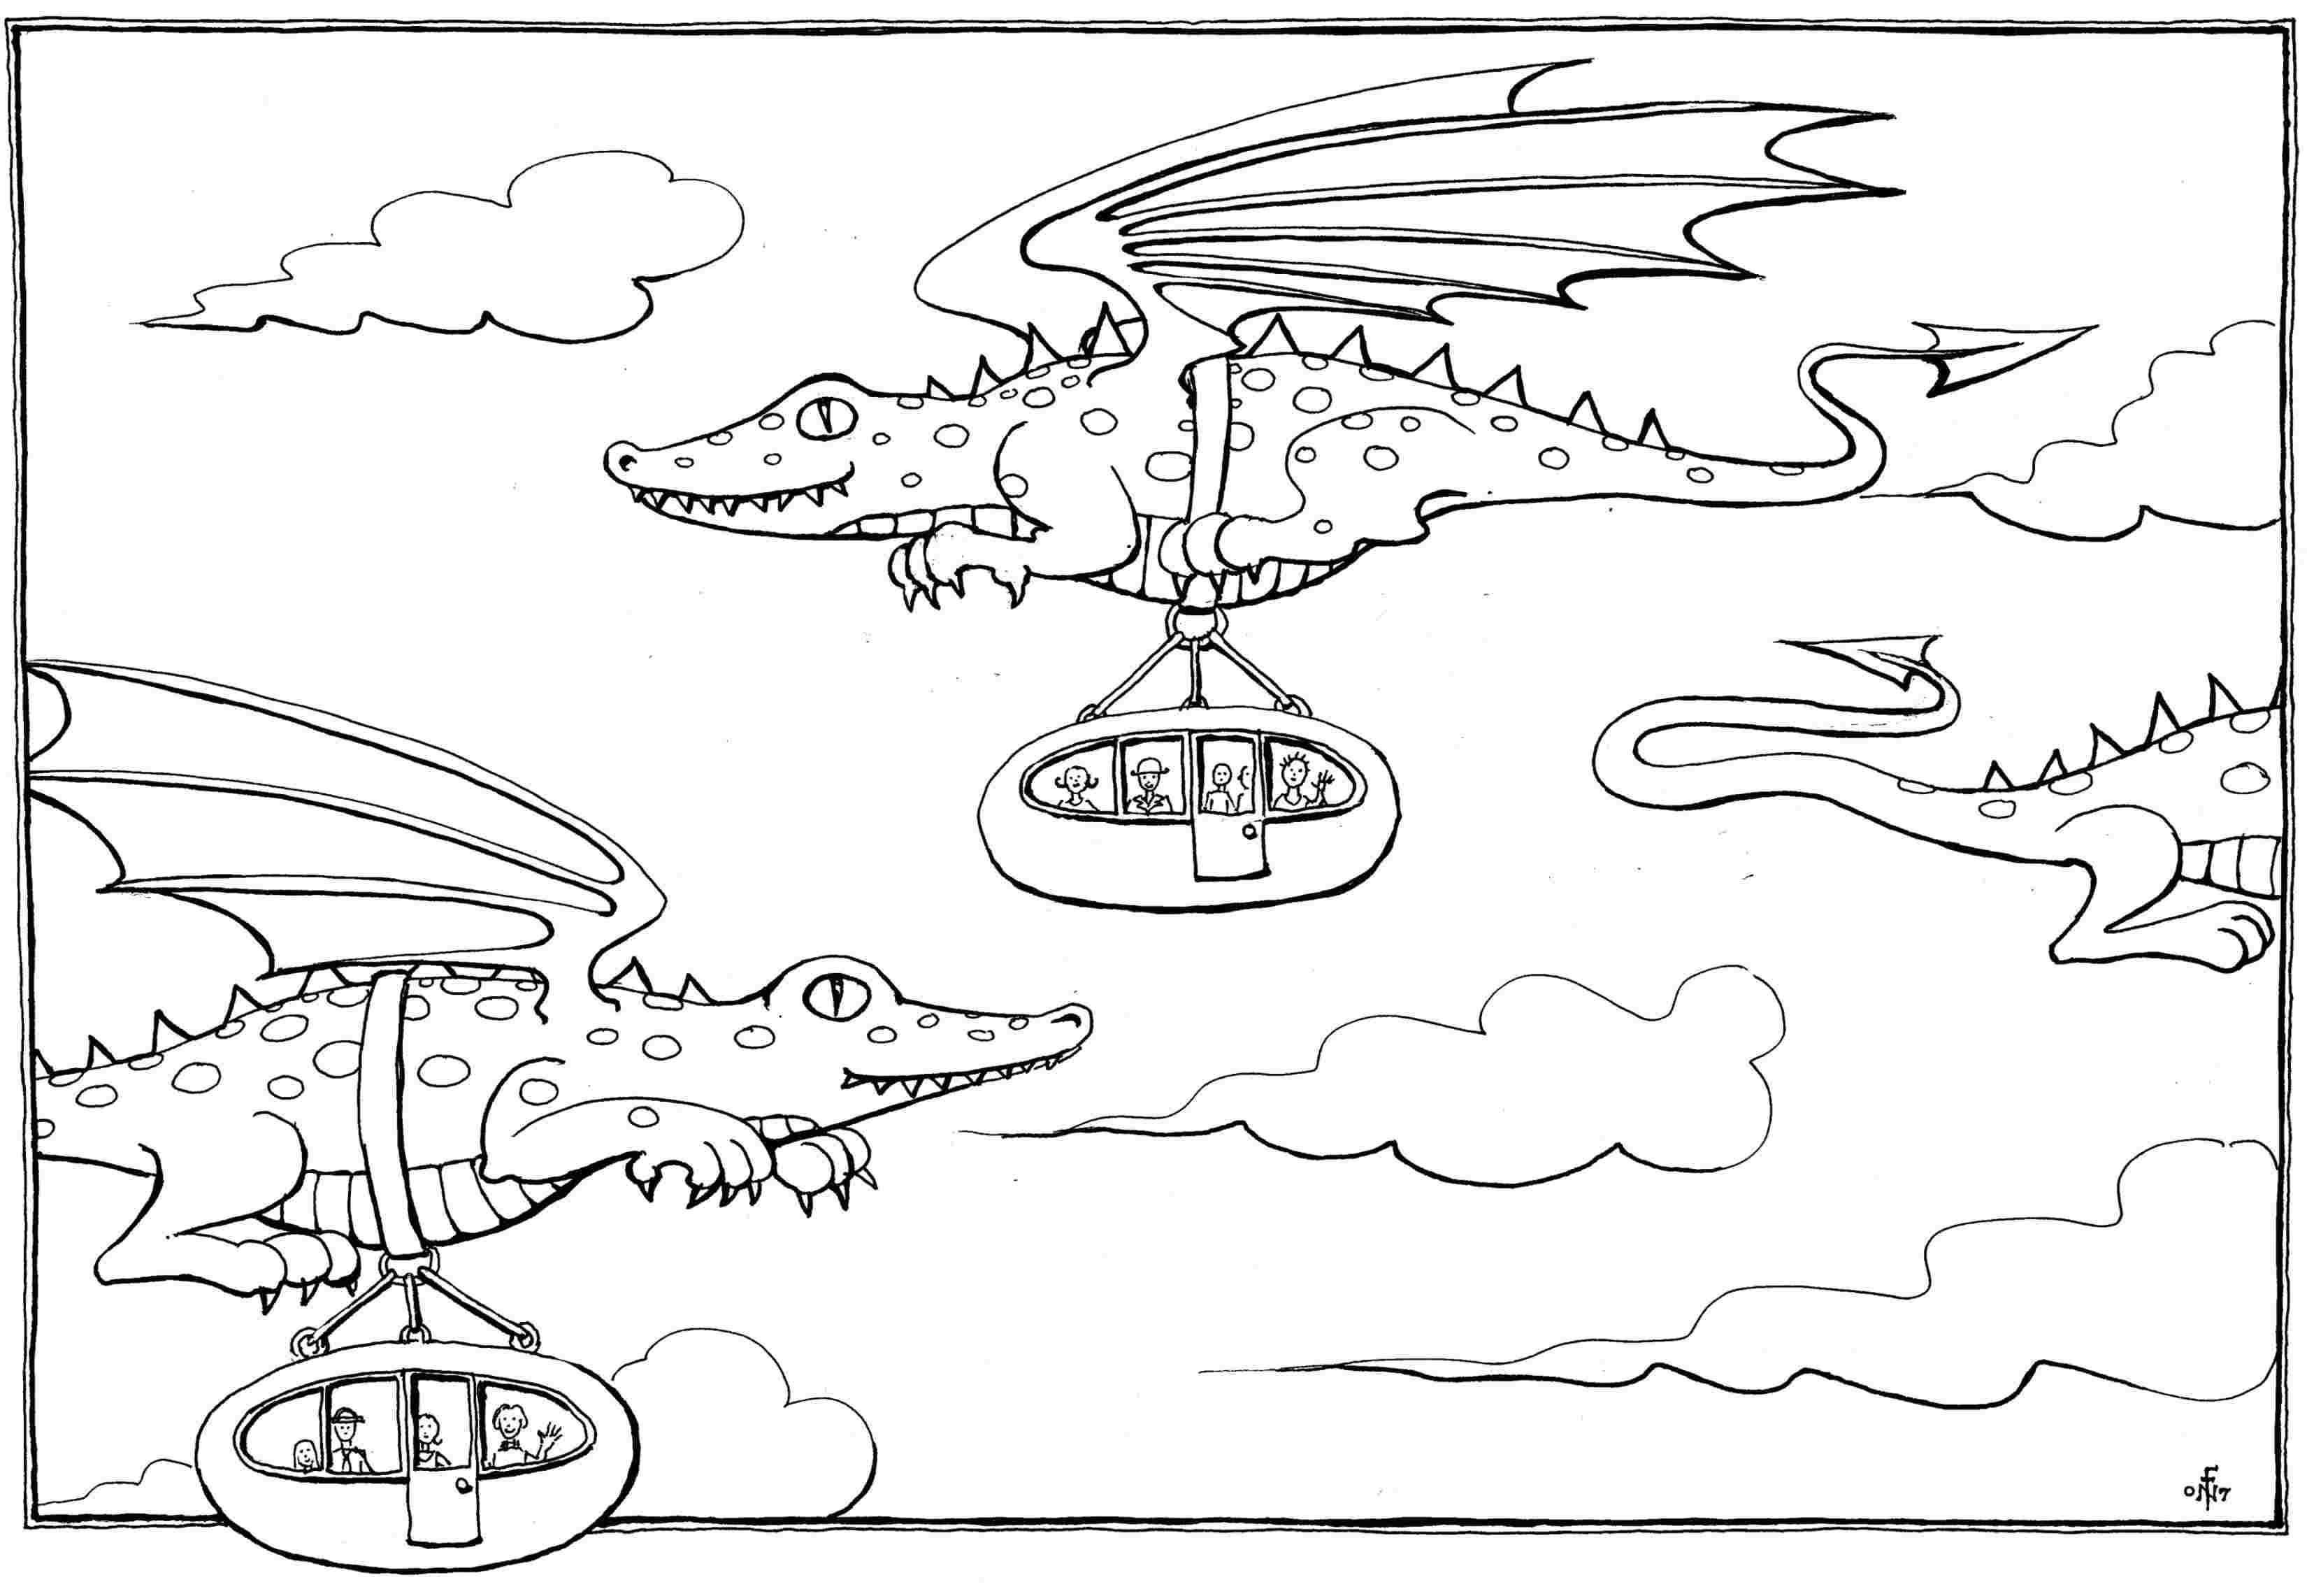 dragon bus colouring in drawing suitable for children